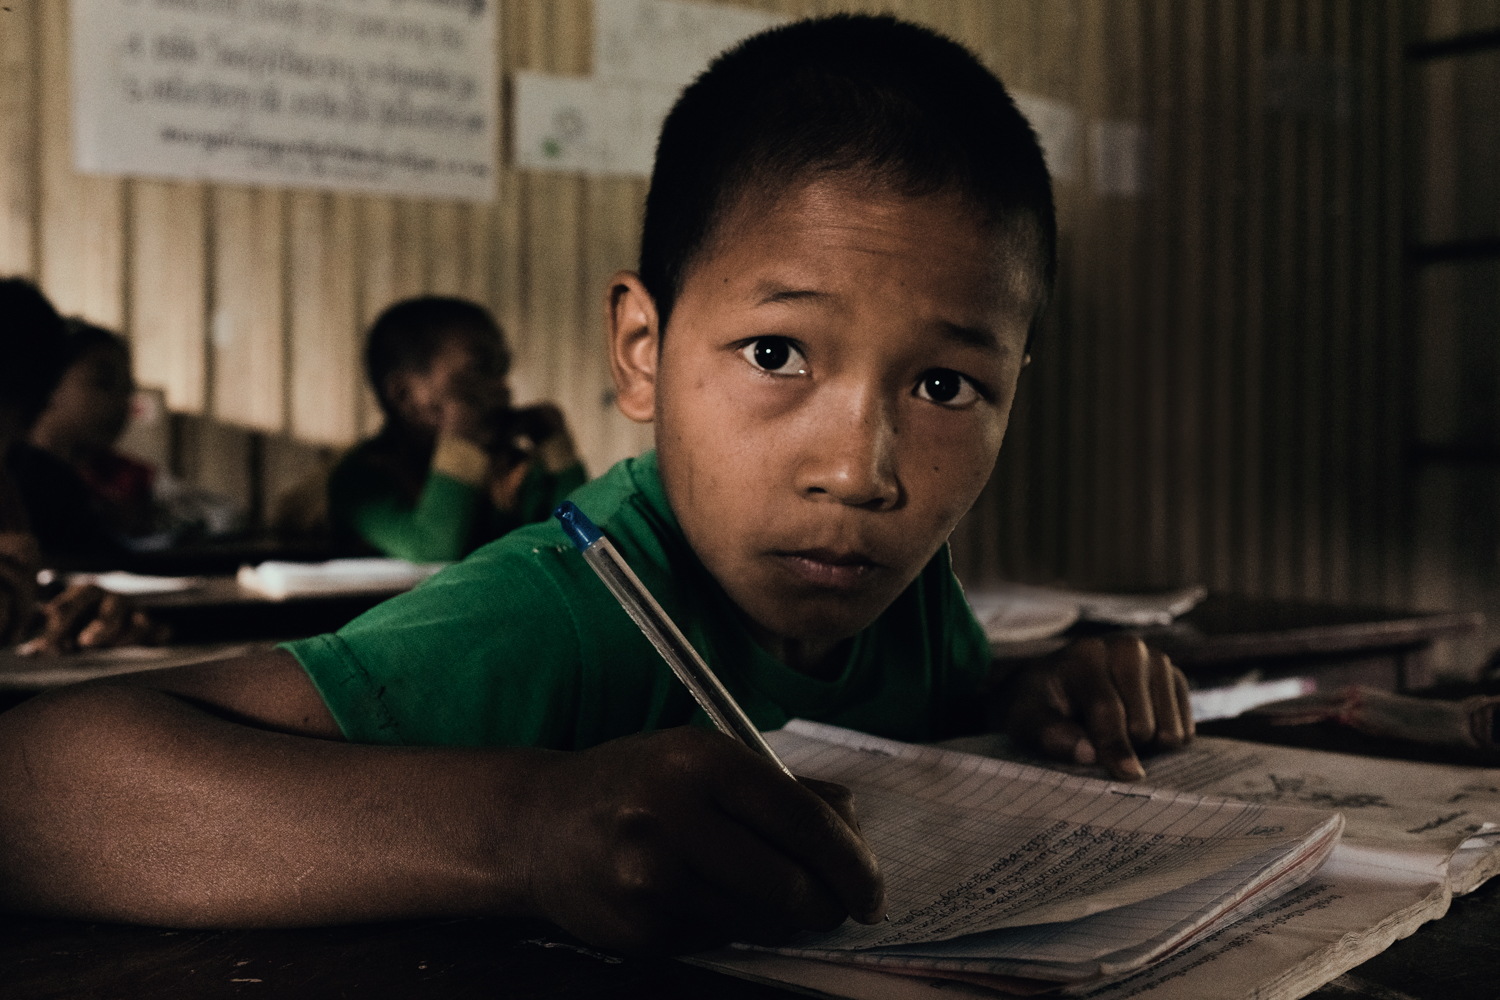 A young boy in this remote village school.